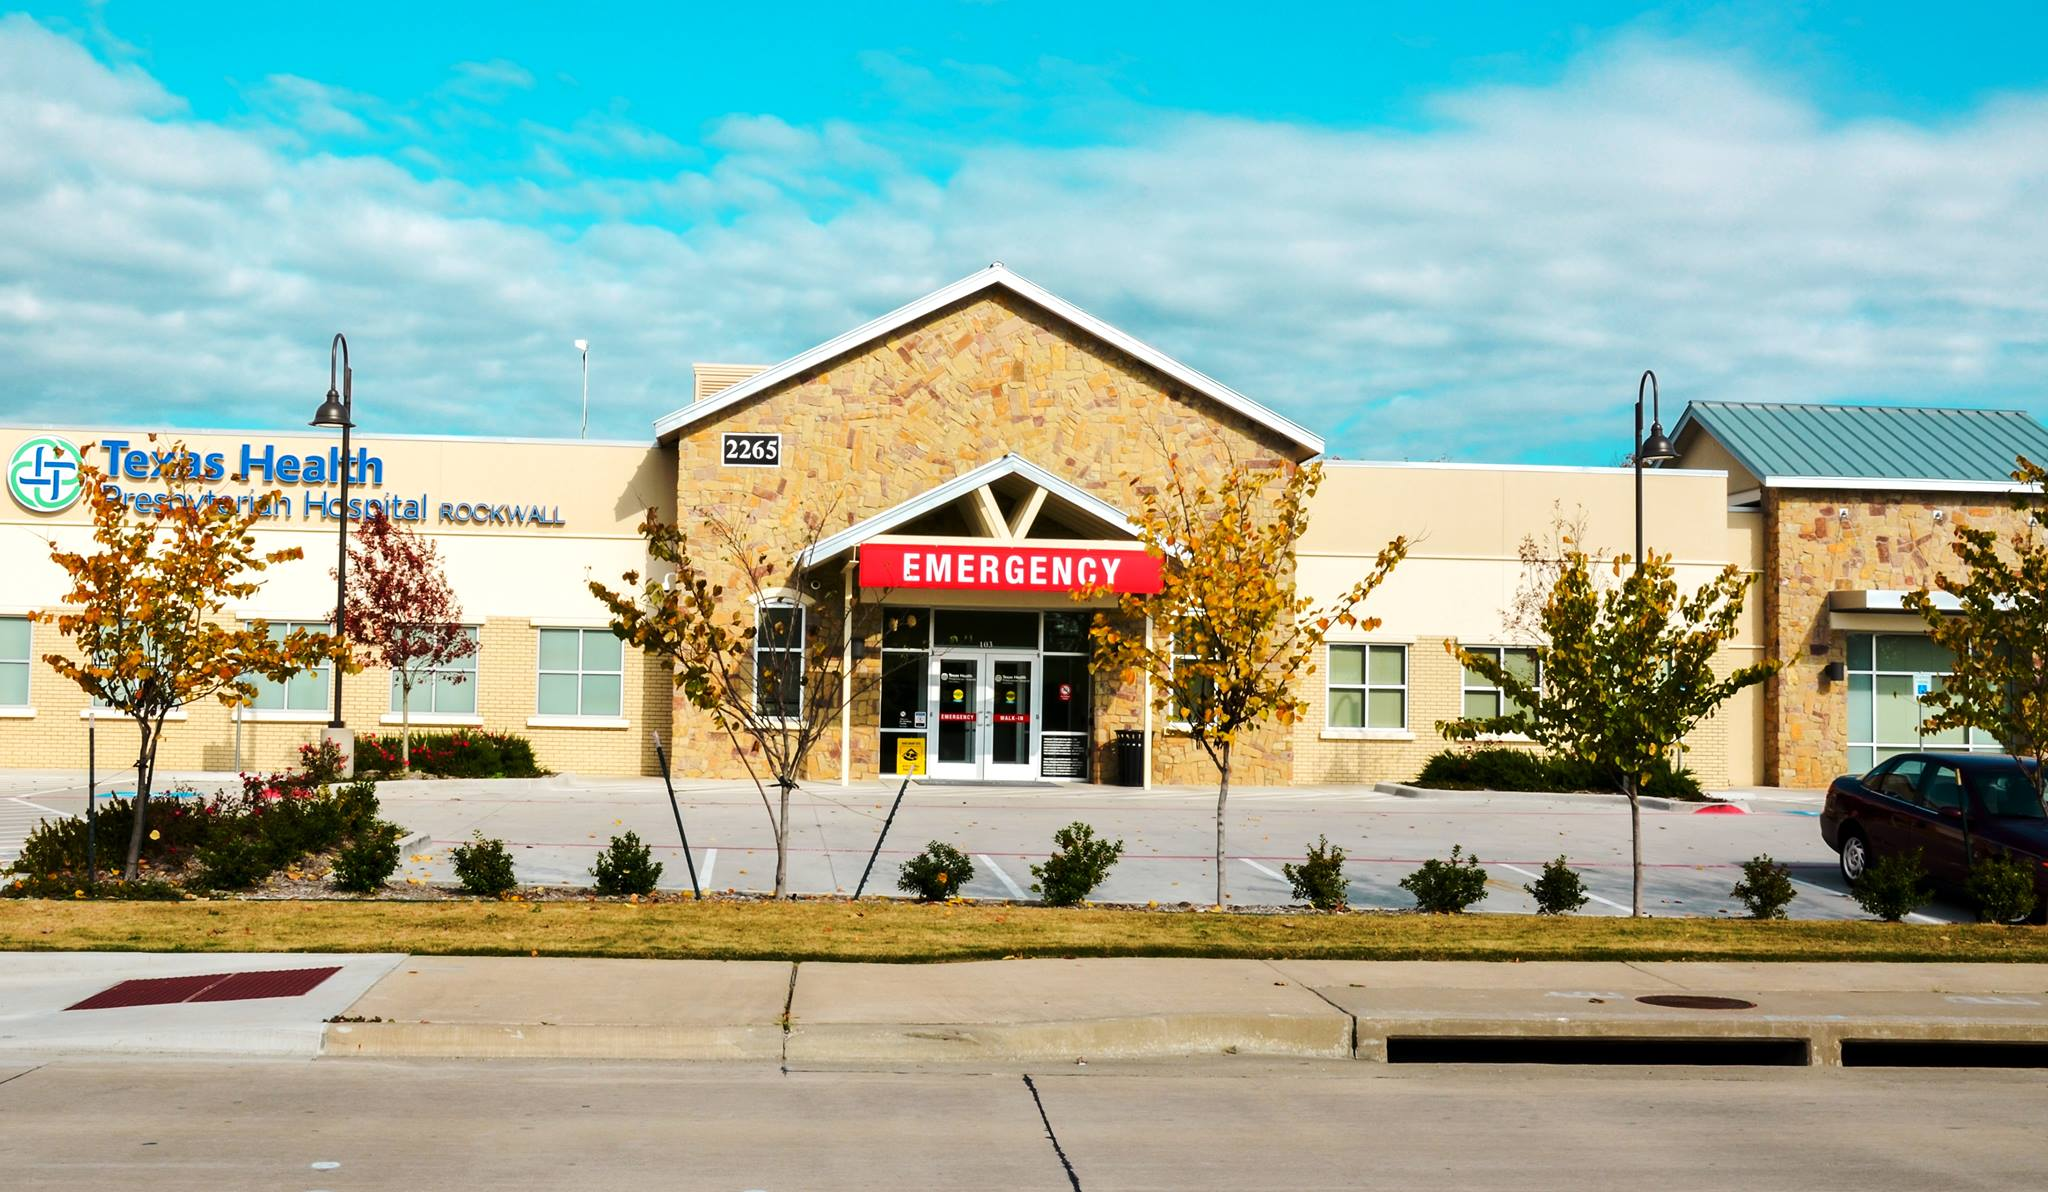 In addition to the emergency room at Texas Health Presbyterian Hospital Rockwall's main campus on Horizon Road, there is this emergency room in North Rockwall at 2265 North Lakeshore Drive off SH 205. Both provide a full range of services and treat the same conditions.